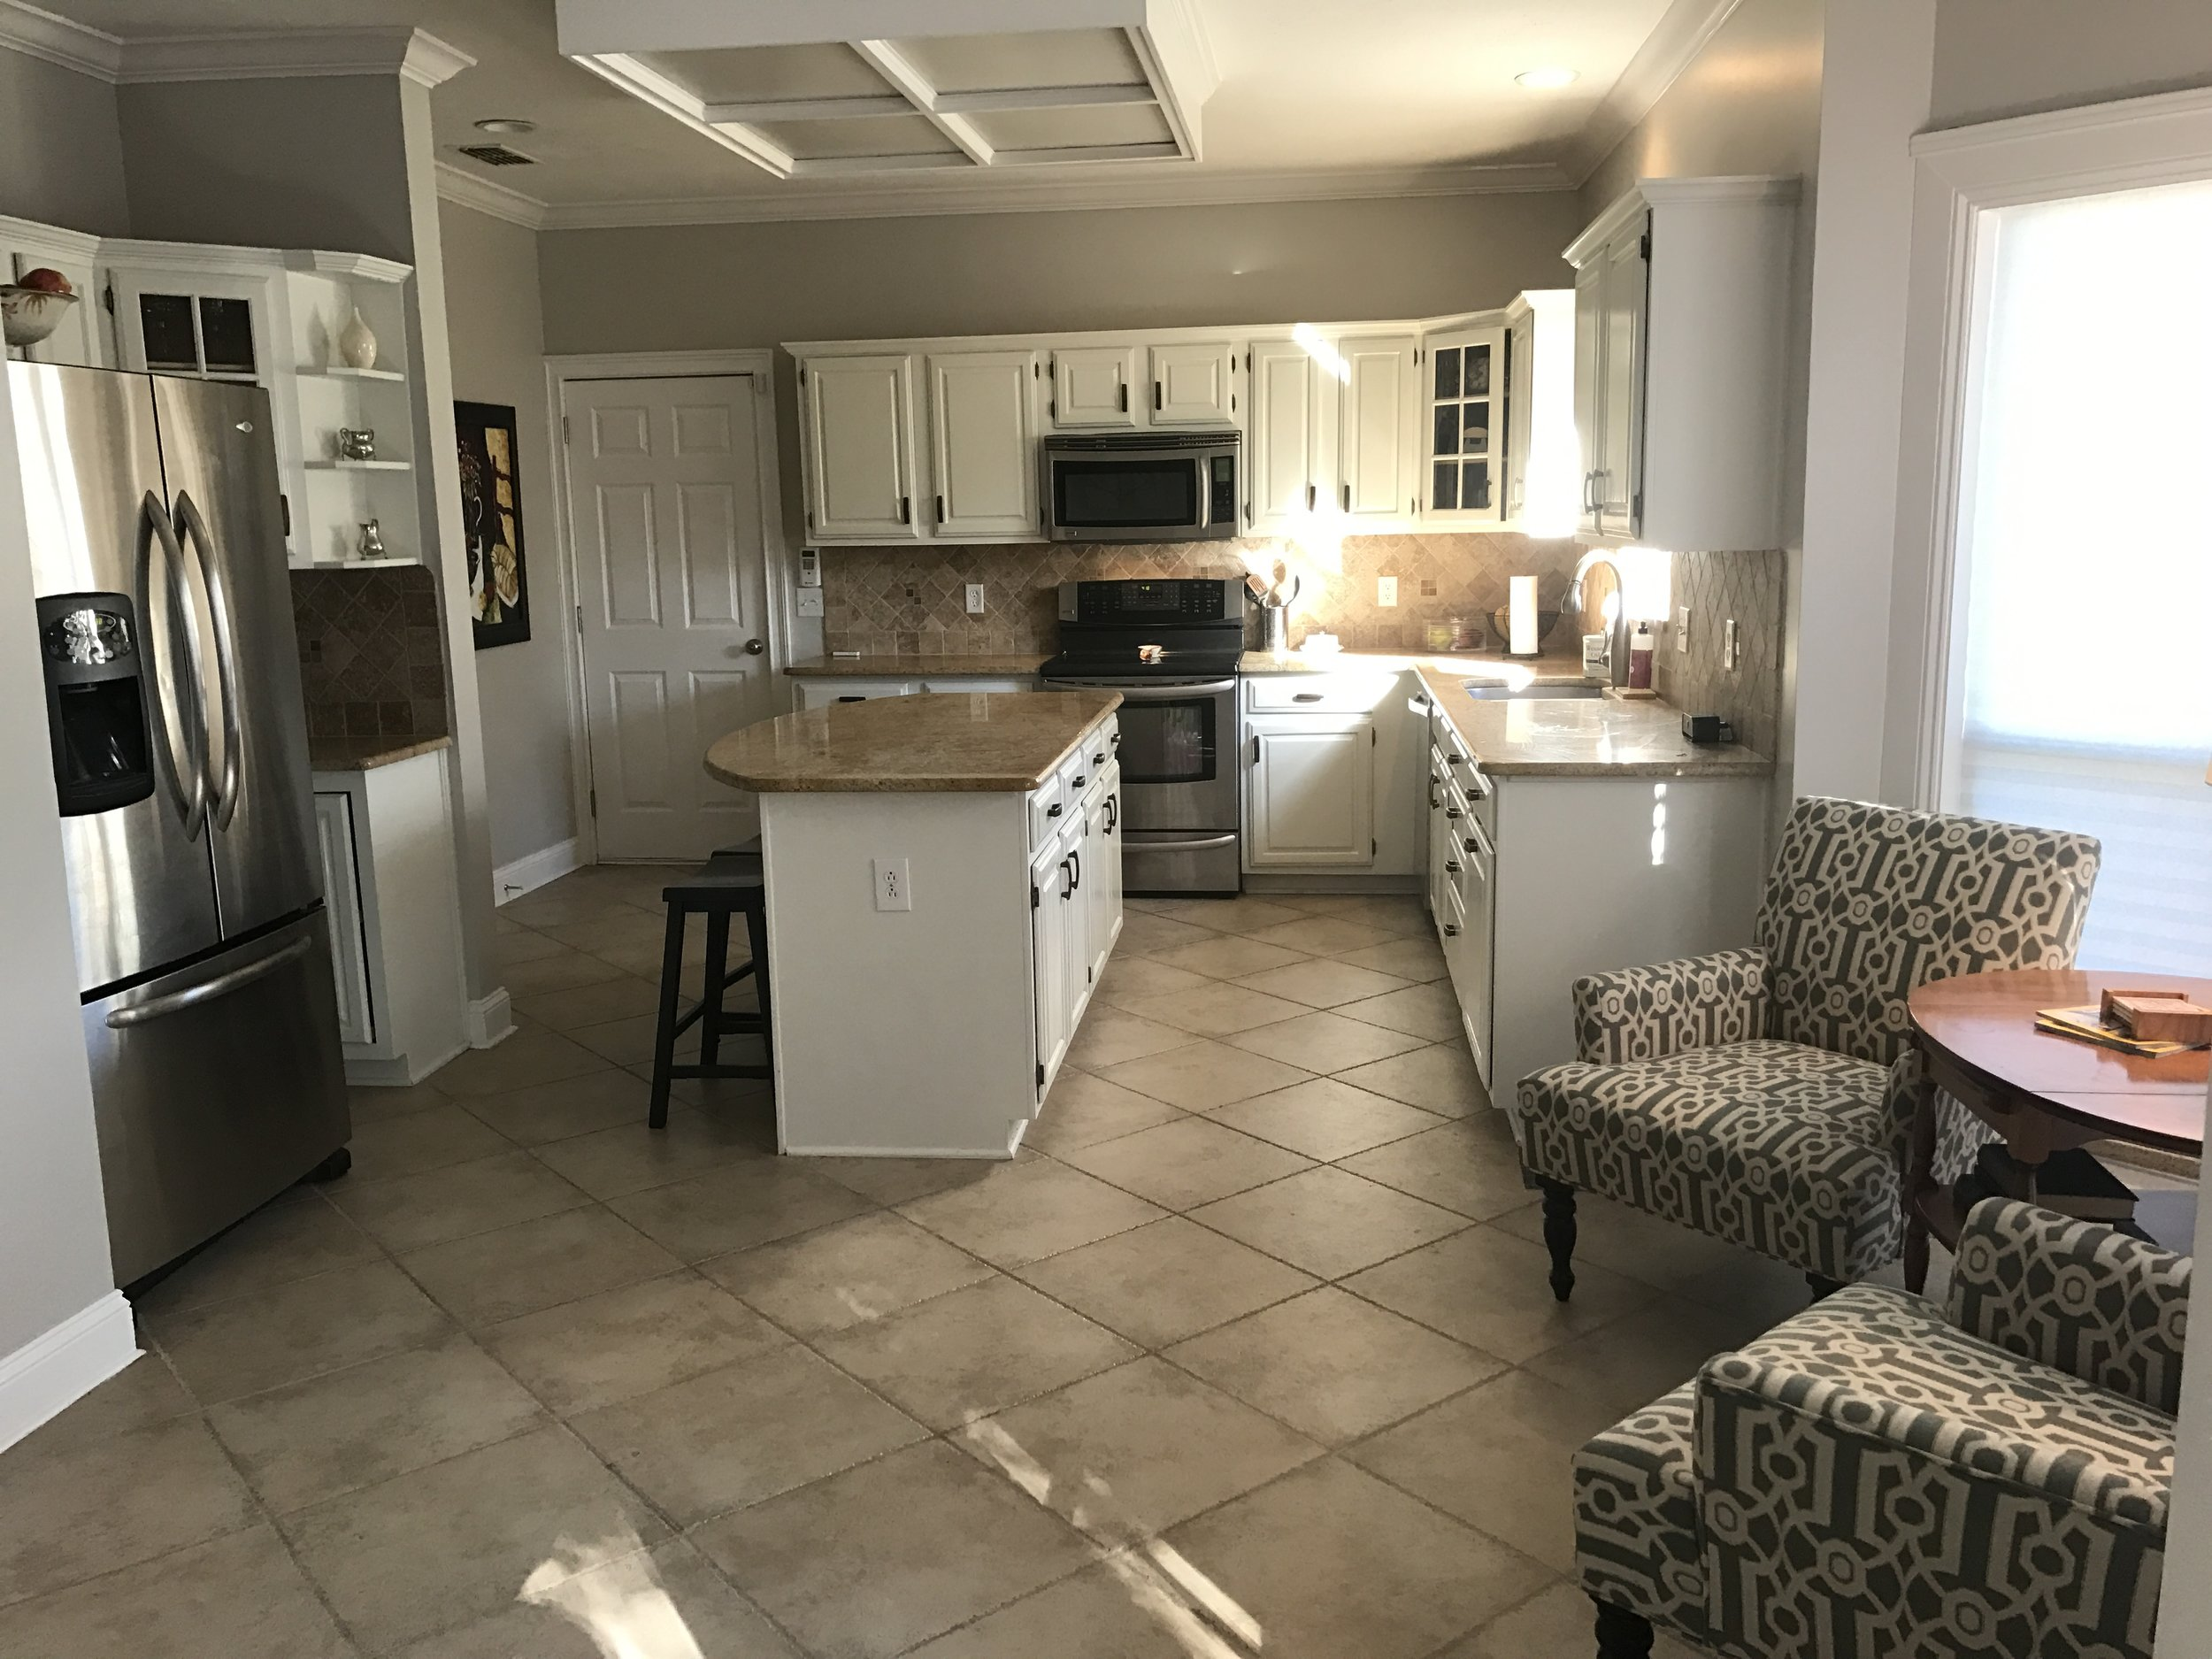 Kitchen - Jacksonville Florida House for Sale